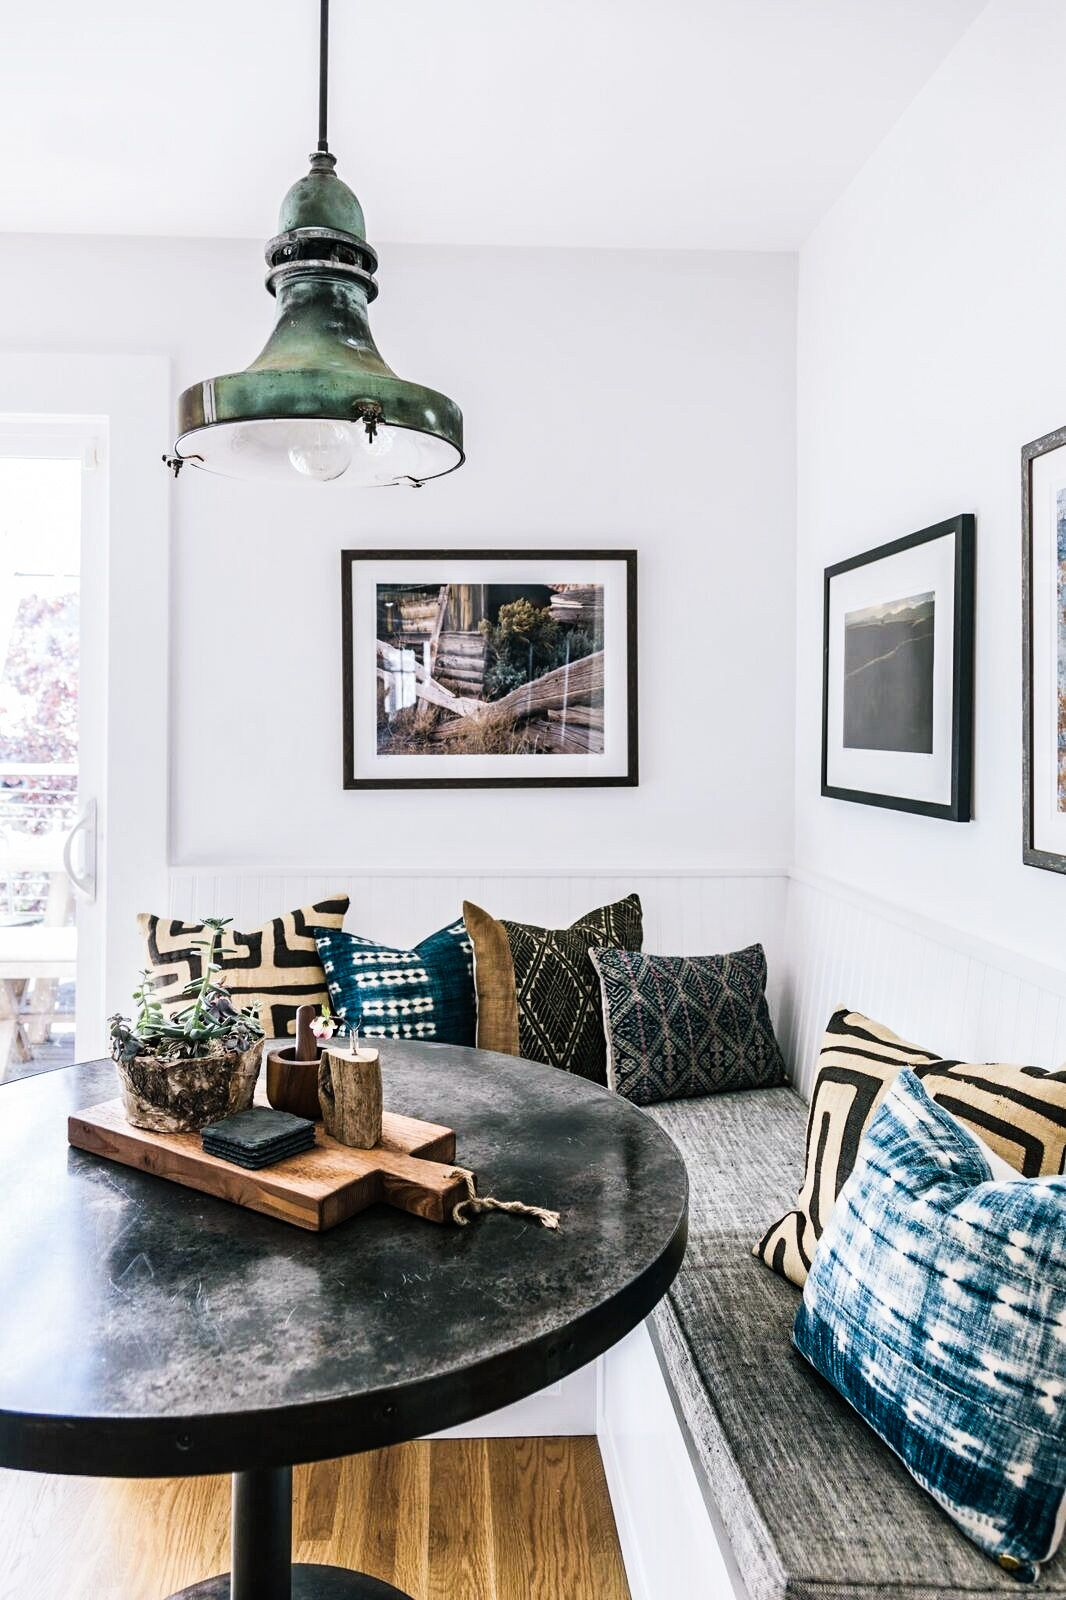 Kitchen table with bench seating and chairs   insta and pinterest amymckeown  for the home  Pinterest